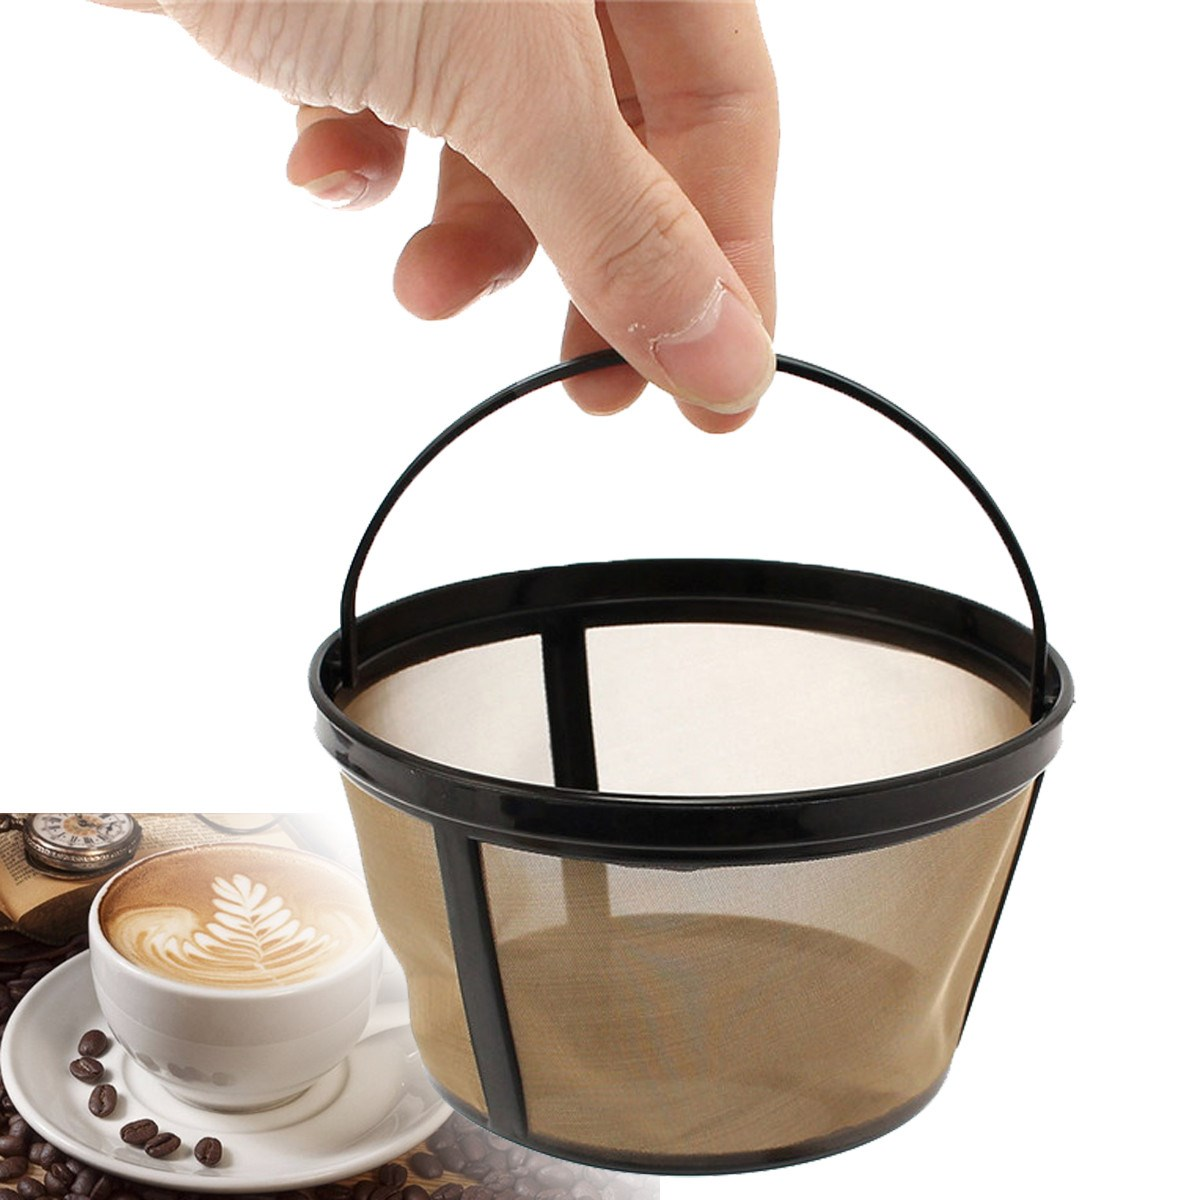 Popular Permanent Coffee Filter Buy Cheap Permanent Coffee